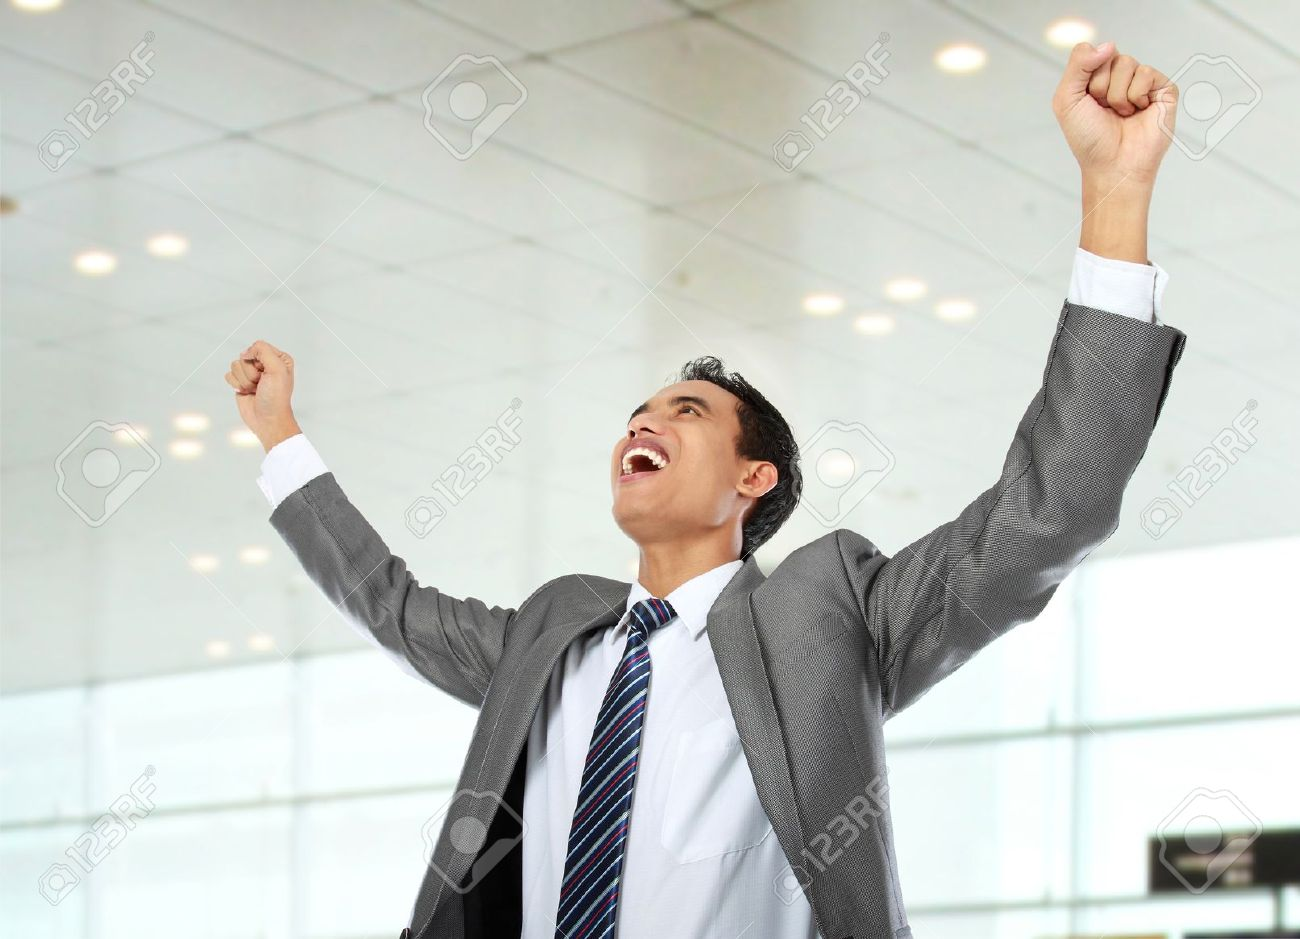 Excited Business Man Celebrating Success In The Office Stock Photo Picture And Royalty Free Image Image 14619474